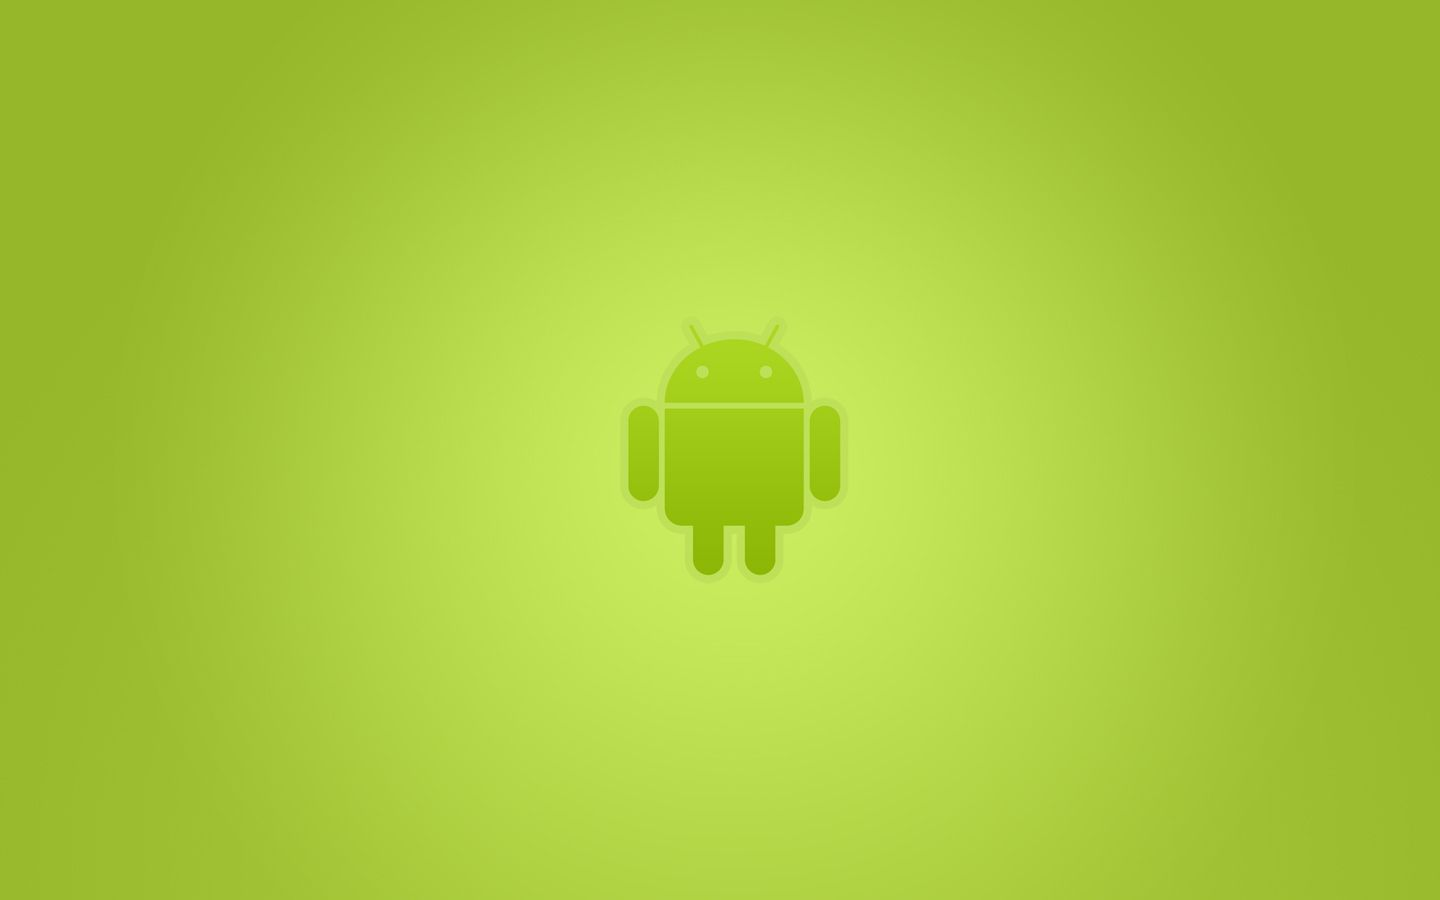 Hd wallpaper android - Android Tablet Wallpaper